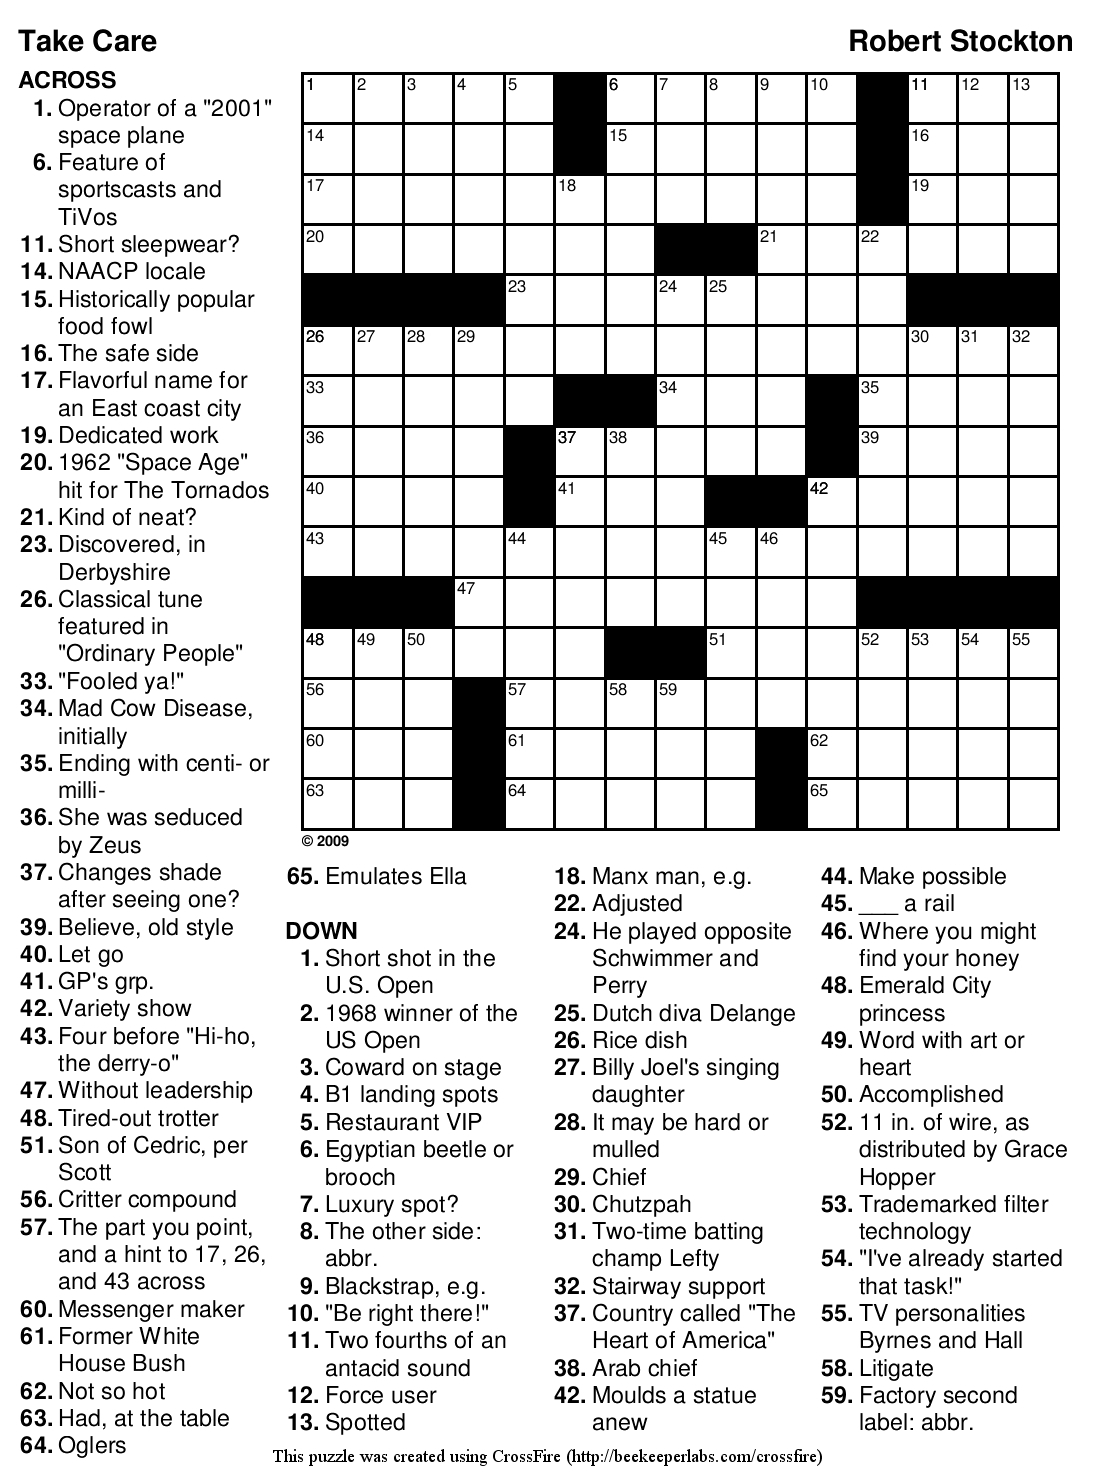 Printable Easy Sports Crossword Puzzles | Download Them Or Print - Printable Sports Crossword Puzzles